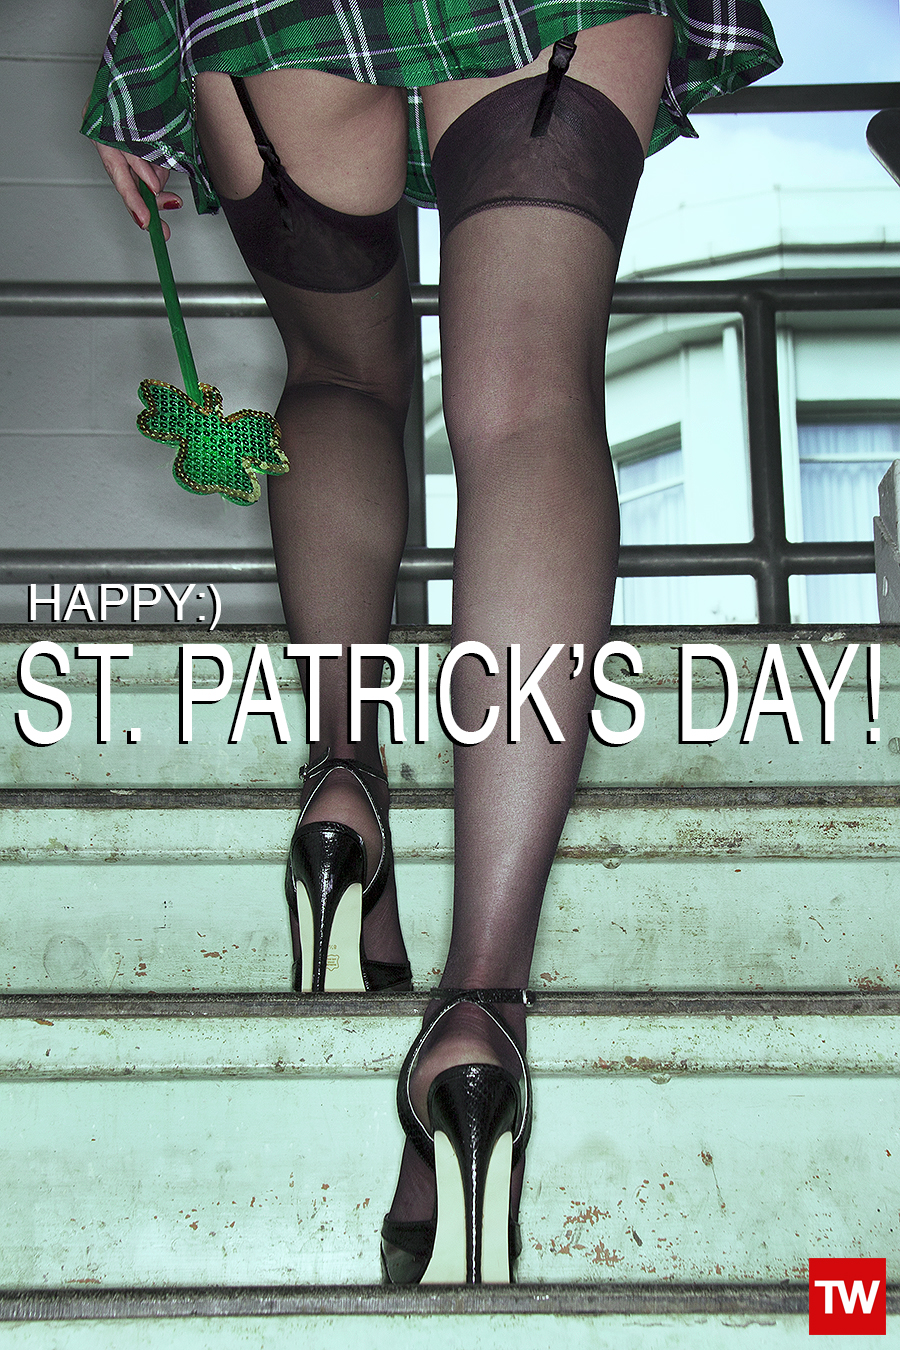 Tony_Ward_Studio_st_Patrick's_day_happy_legs_lingerie_green_sexy_outfits_shamarocks